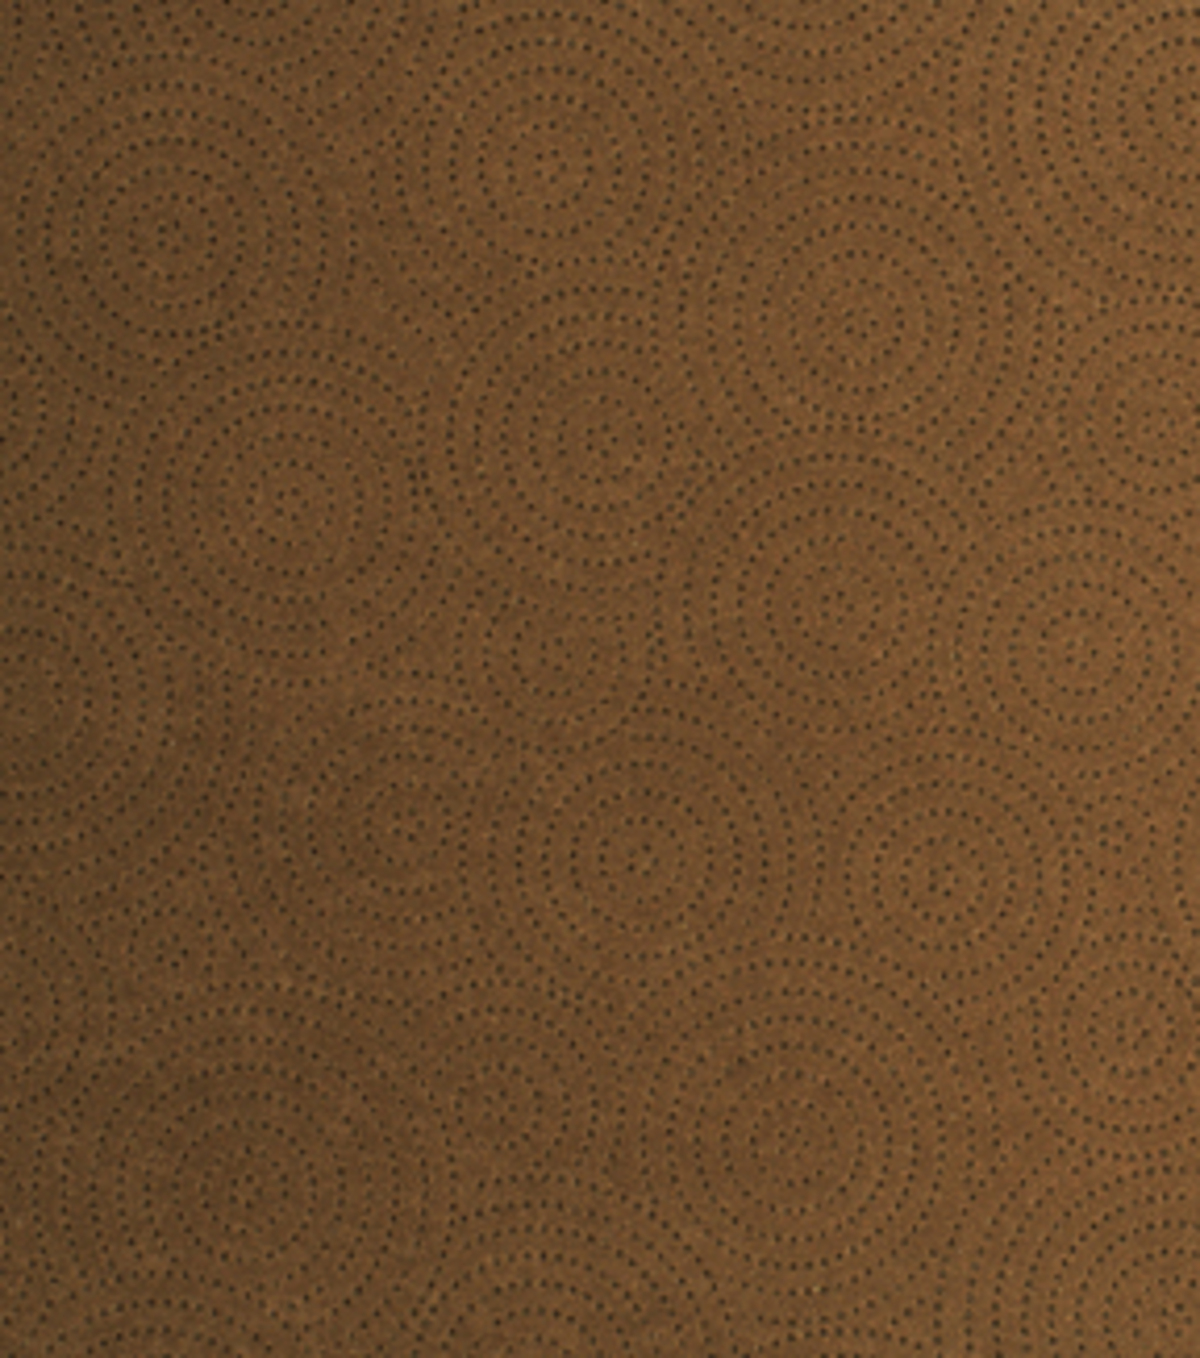 Home Decor 8\u0022x8\u0022 Fabric Swatch-Sta-Kleen Vinyl Cladius Bronze